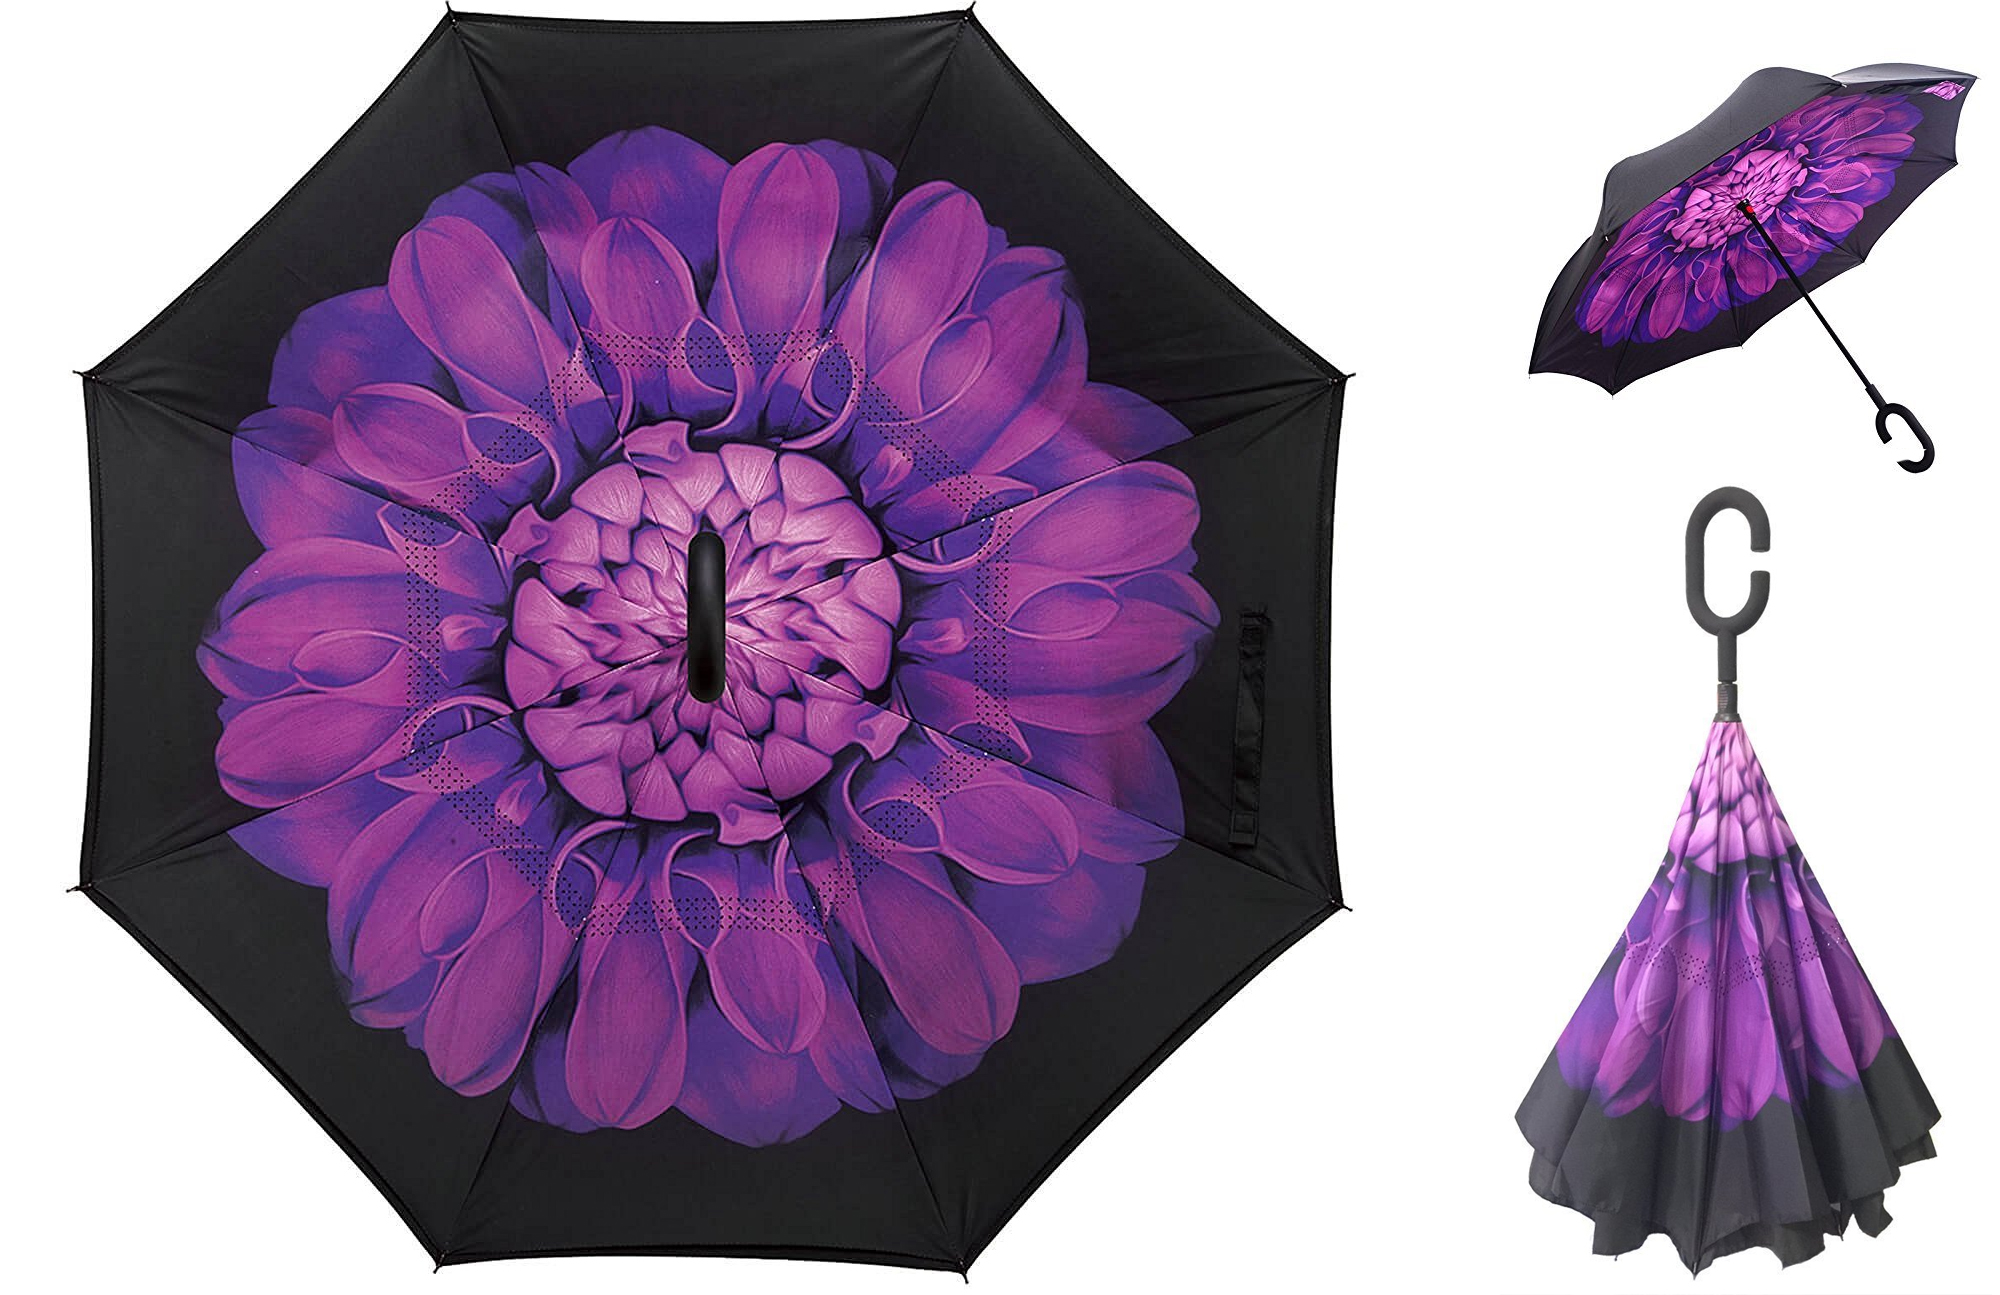 unique-gift-ideas-for-her-aweoods-double-layer-inverted-umbrella-cars-reversible-umbrella